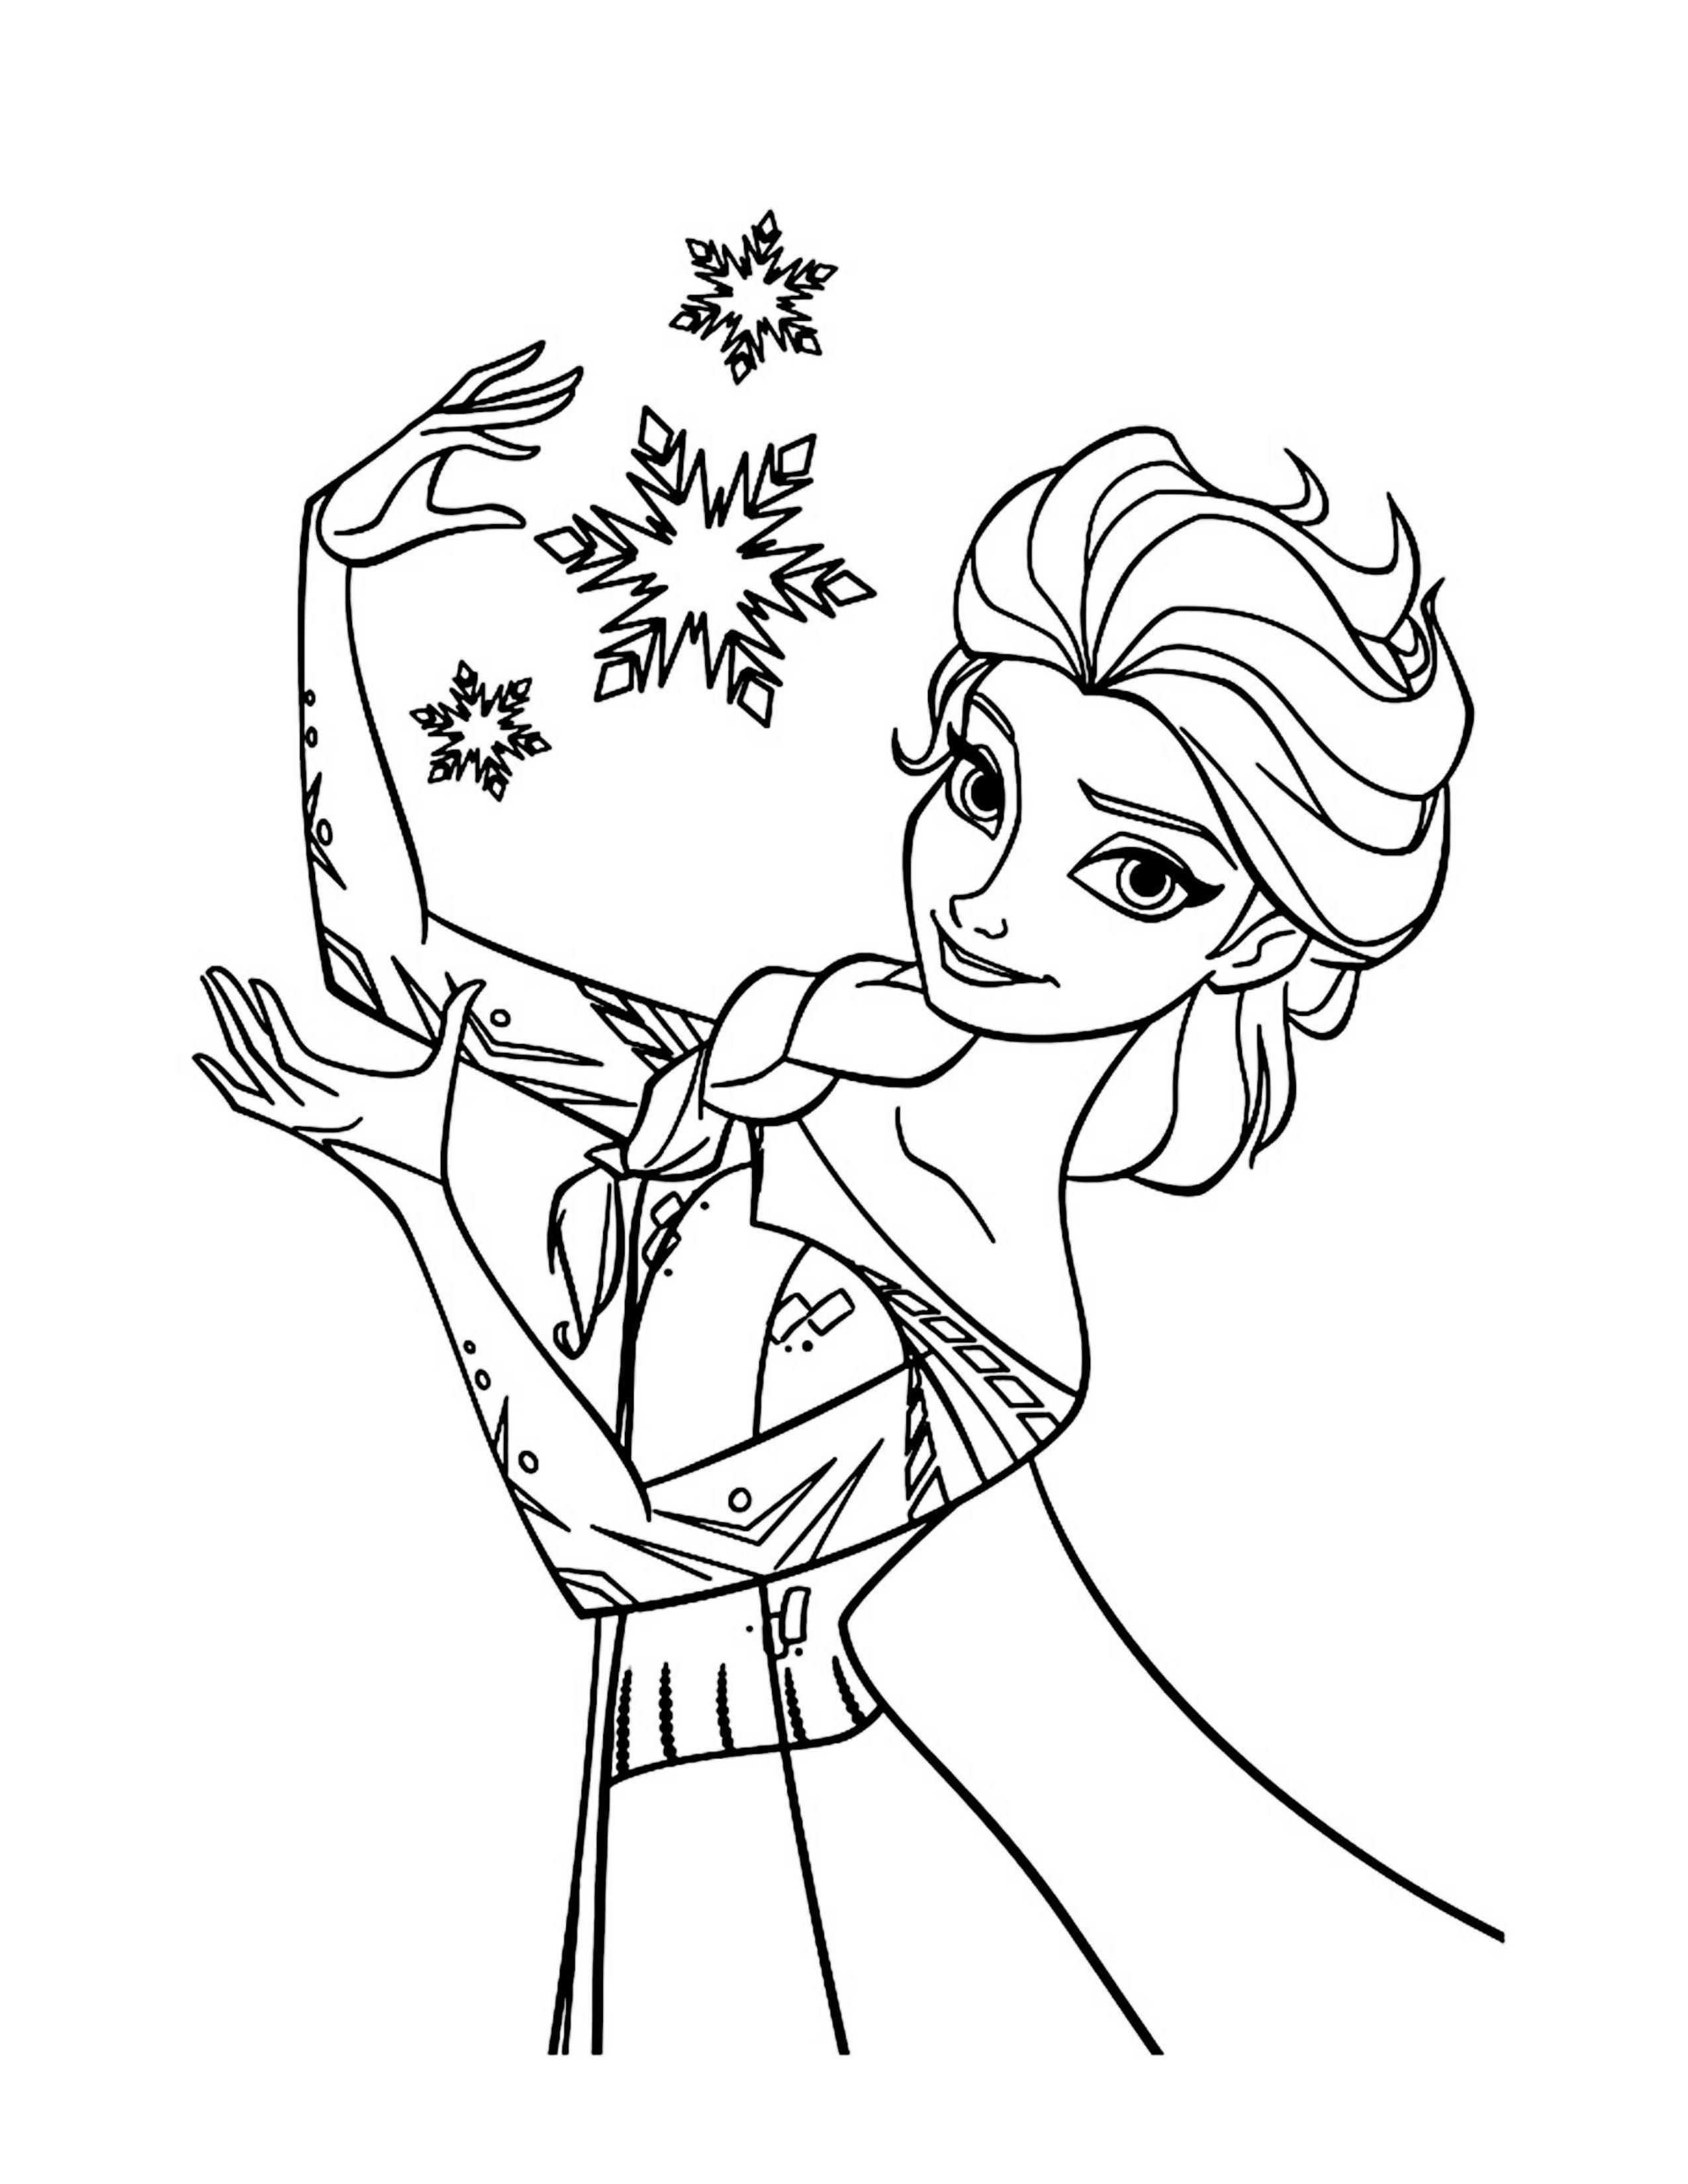 Pin On Digital Black And White Coloring Pages